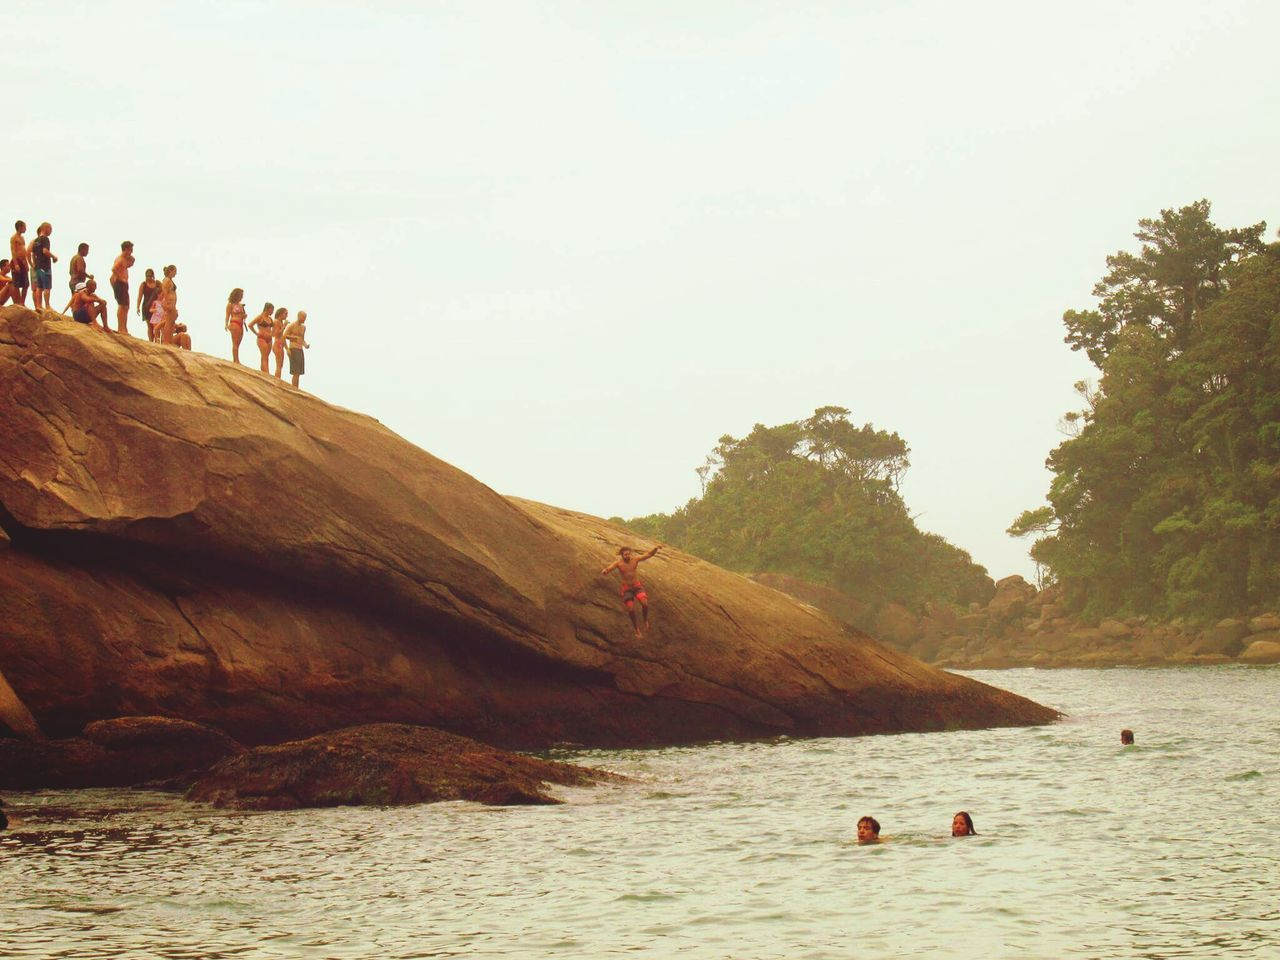 Day People Sand Beach Adult Togetherness Water Jumping Beachphotography Rock Formation Vacation Destination Ilha Grande Rio De Janeiro Eyeem Fotos Collection⛵ Funtimes Jumping Into Water EyeEmNewHere